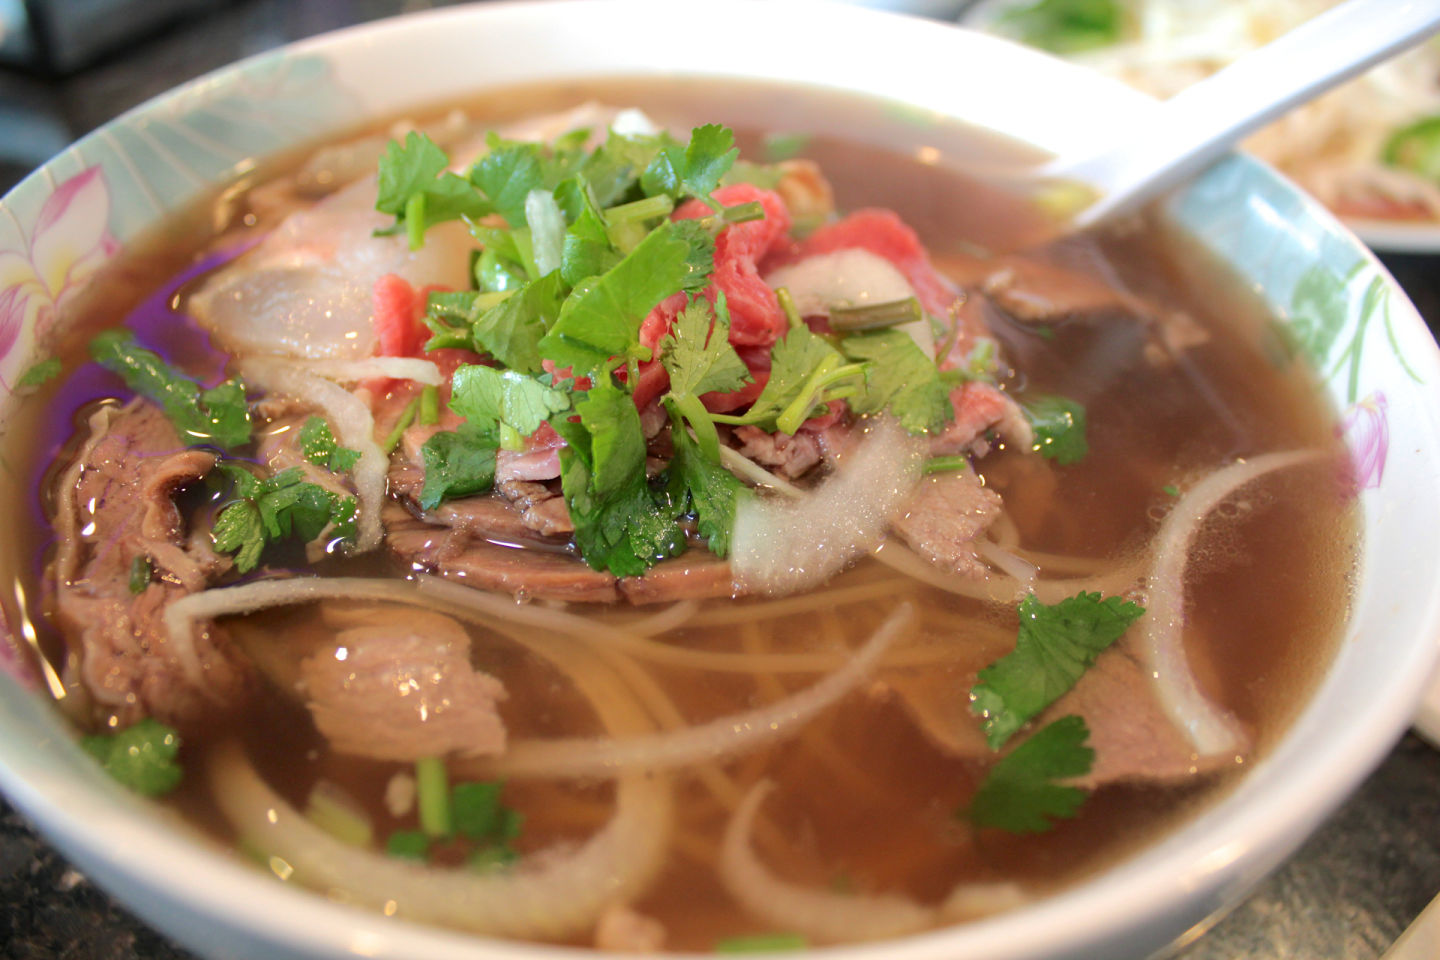 The popular #8 combination pho with rare filet mignon, well-done brisket, flank and tendon. Jeff Cianci